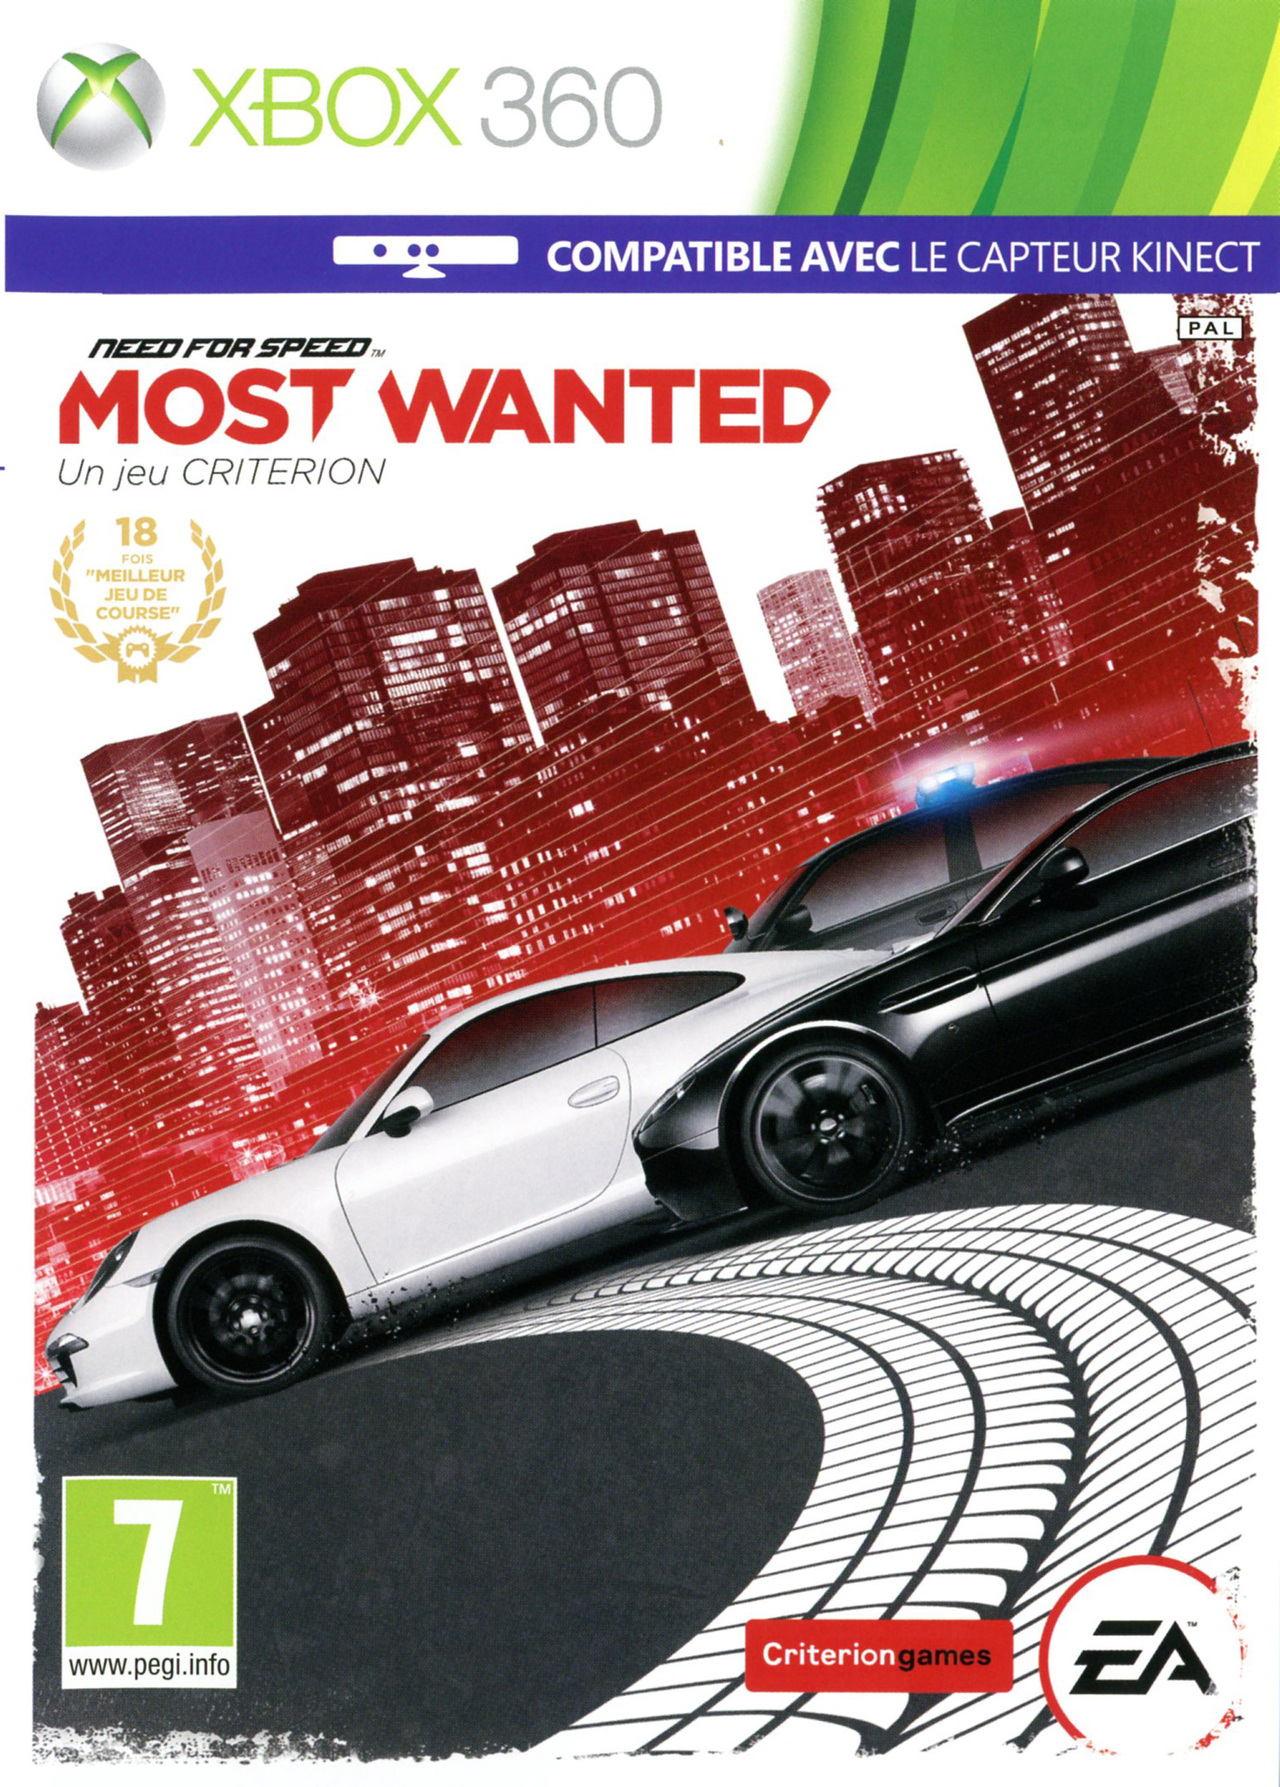 Jaquette/packshot NFS Most Wanted 2012 Xbox 360